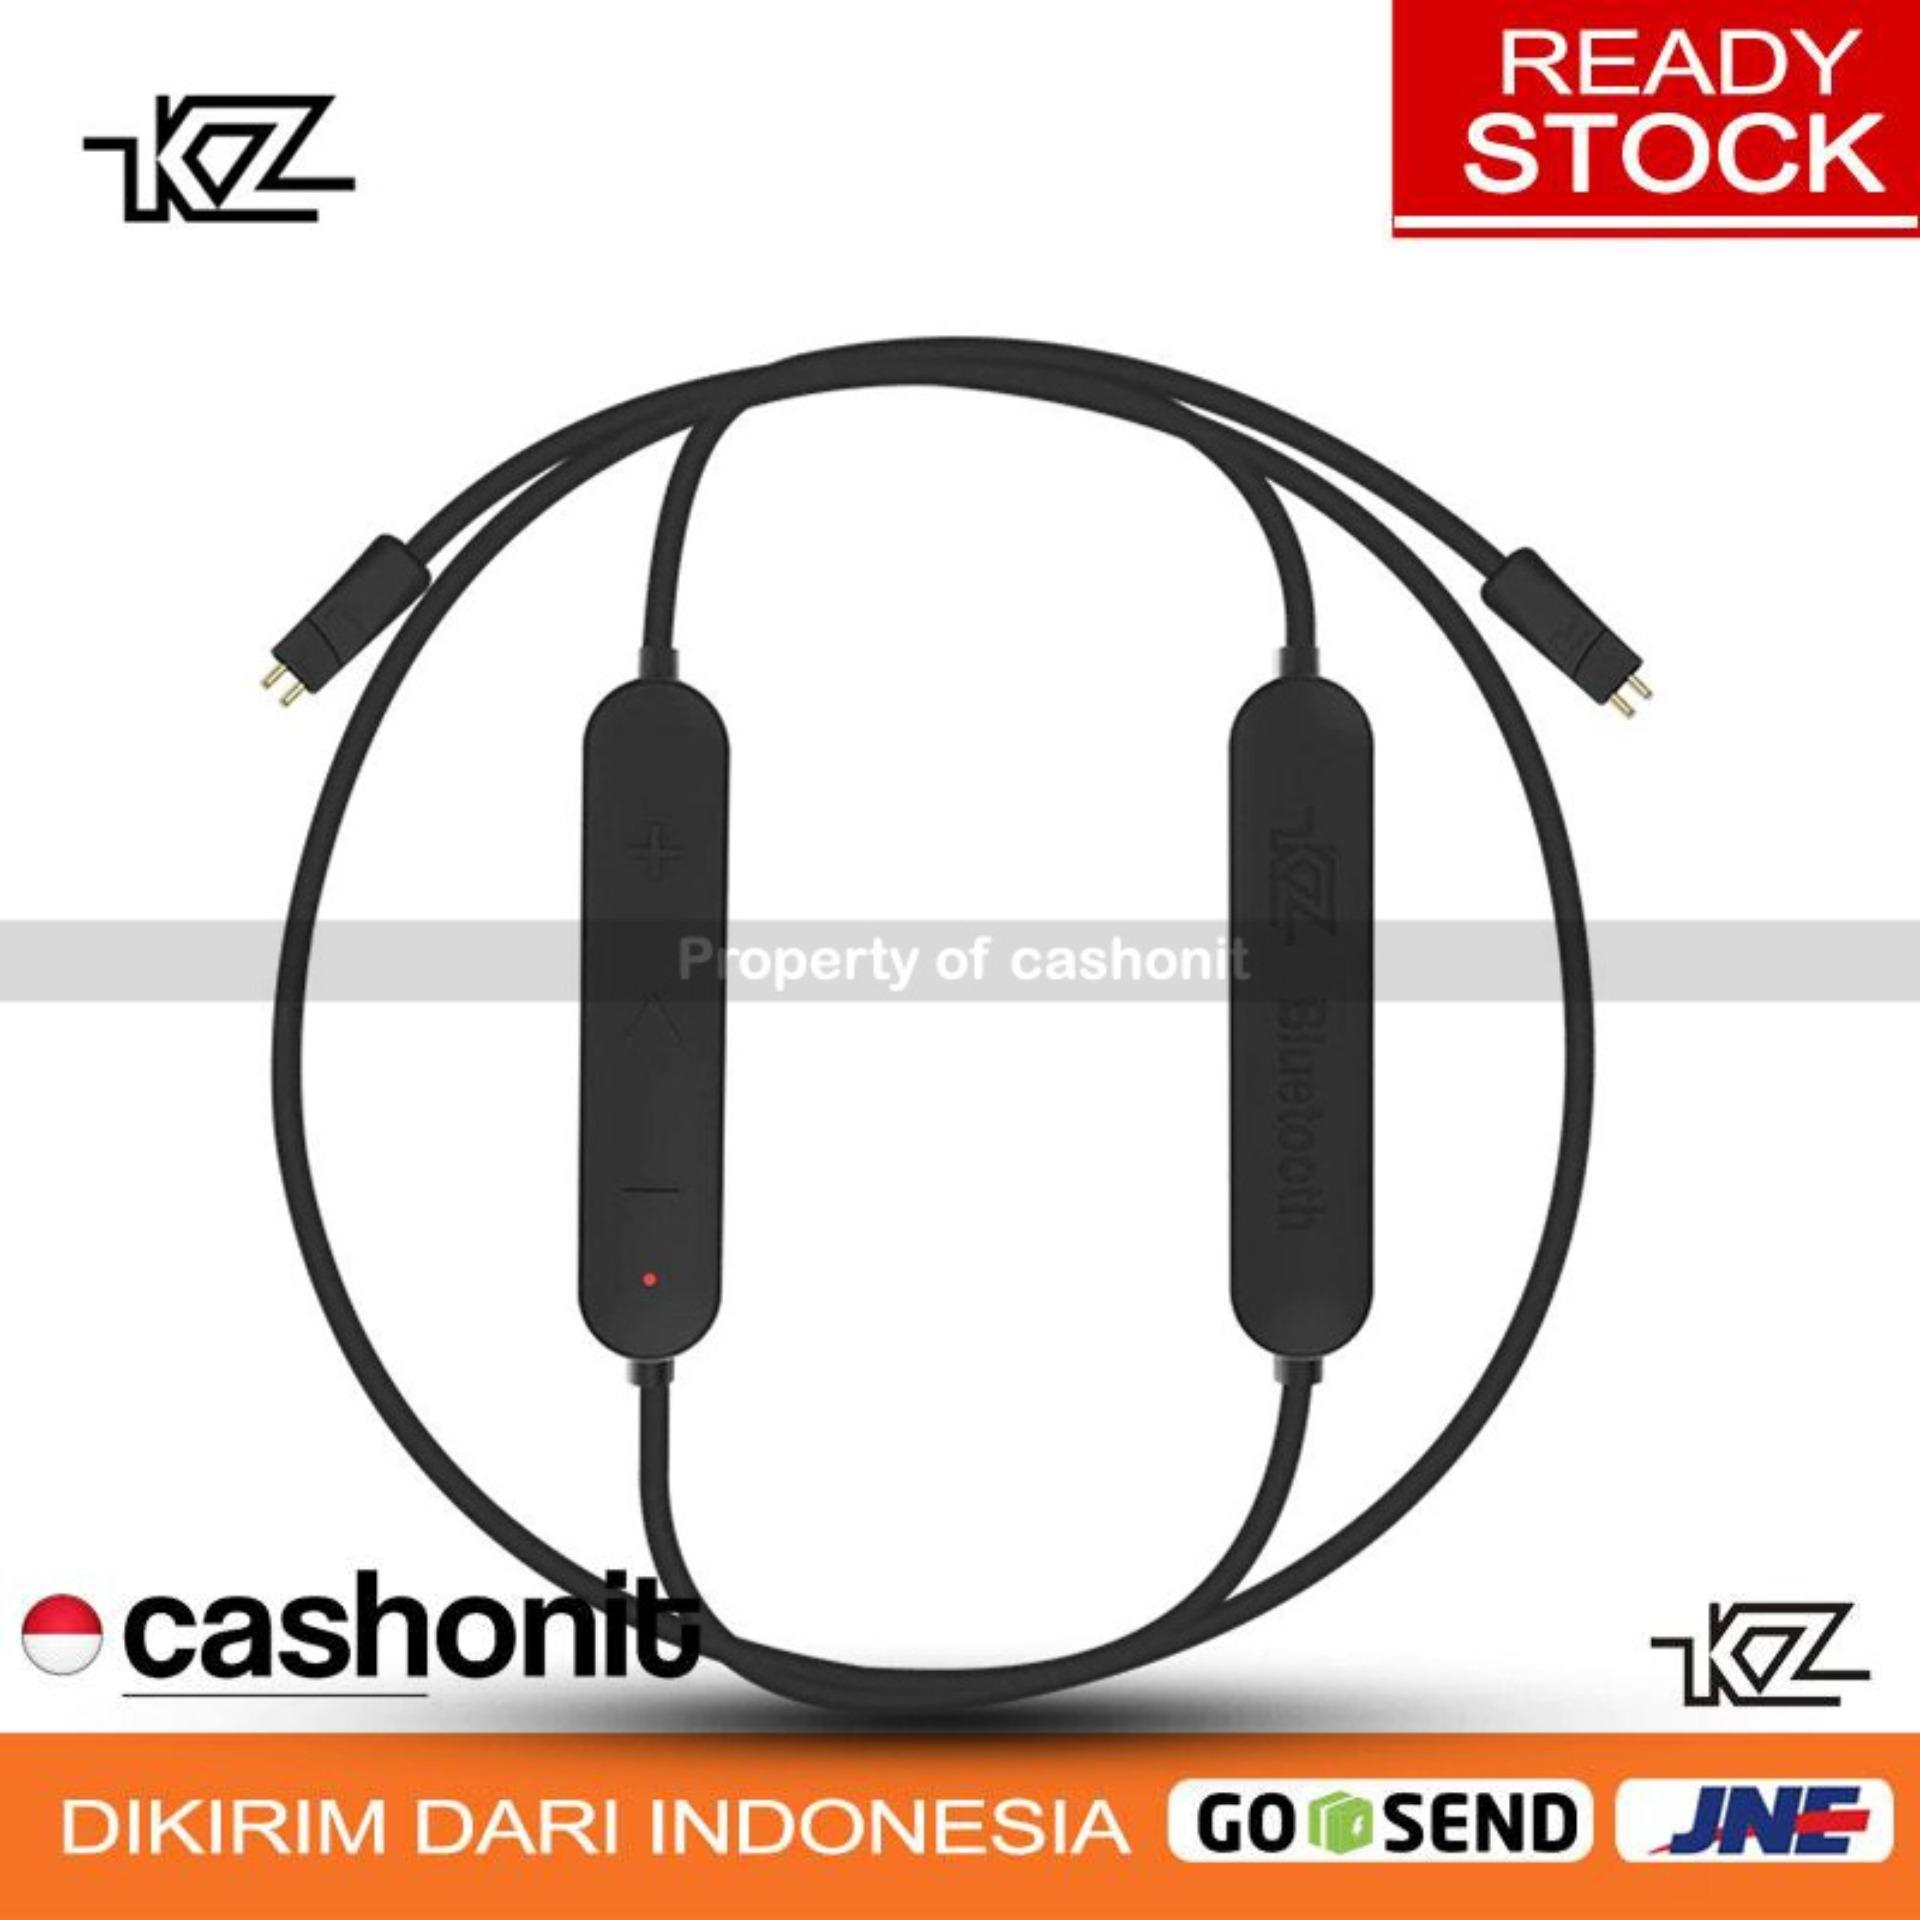 Knowledge Zenith Earphone With Mic Qkz S6 Kz Acoustics Original Aptx Kabel Bluetooth Untuk Zs3 Zs5 Zs6 Hitam